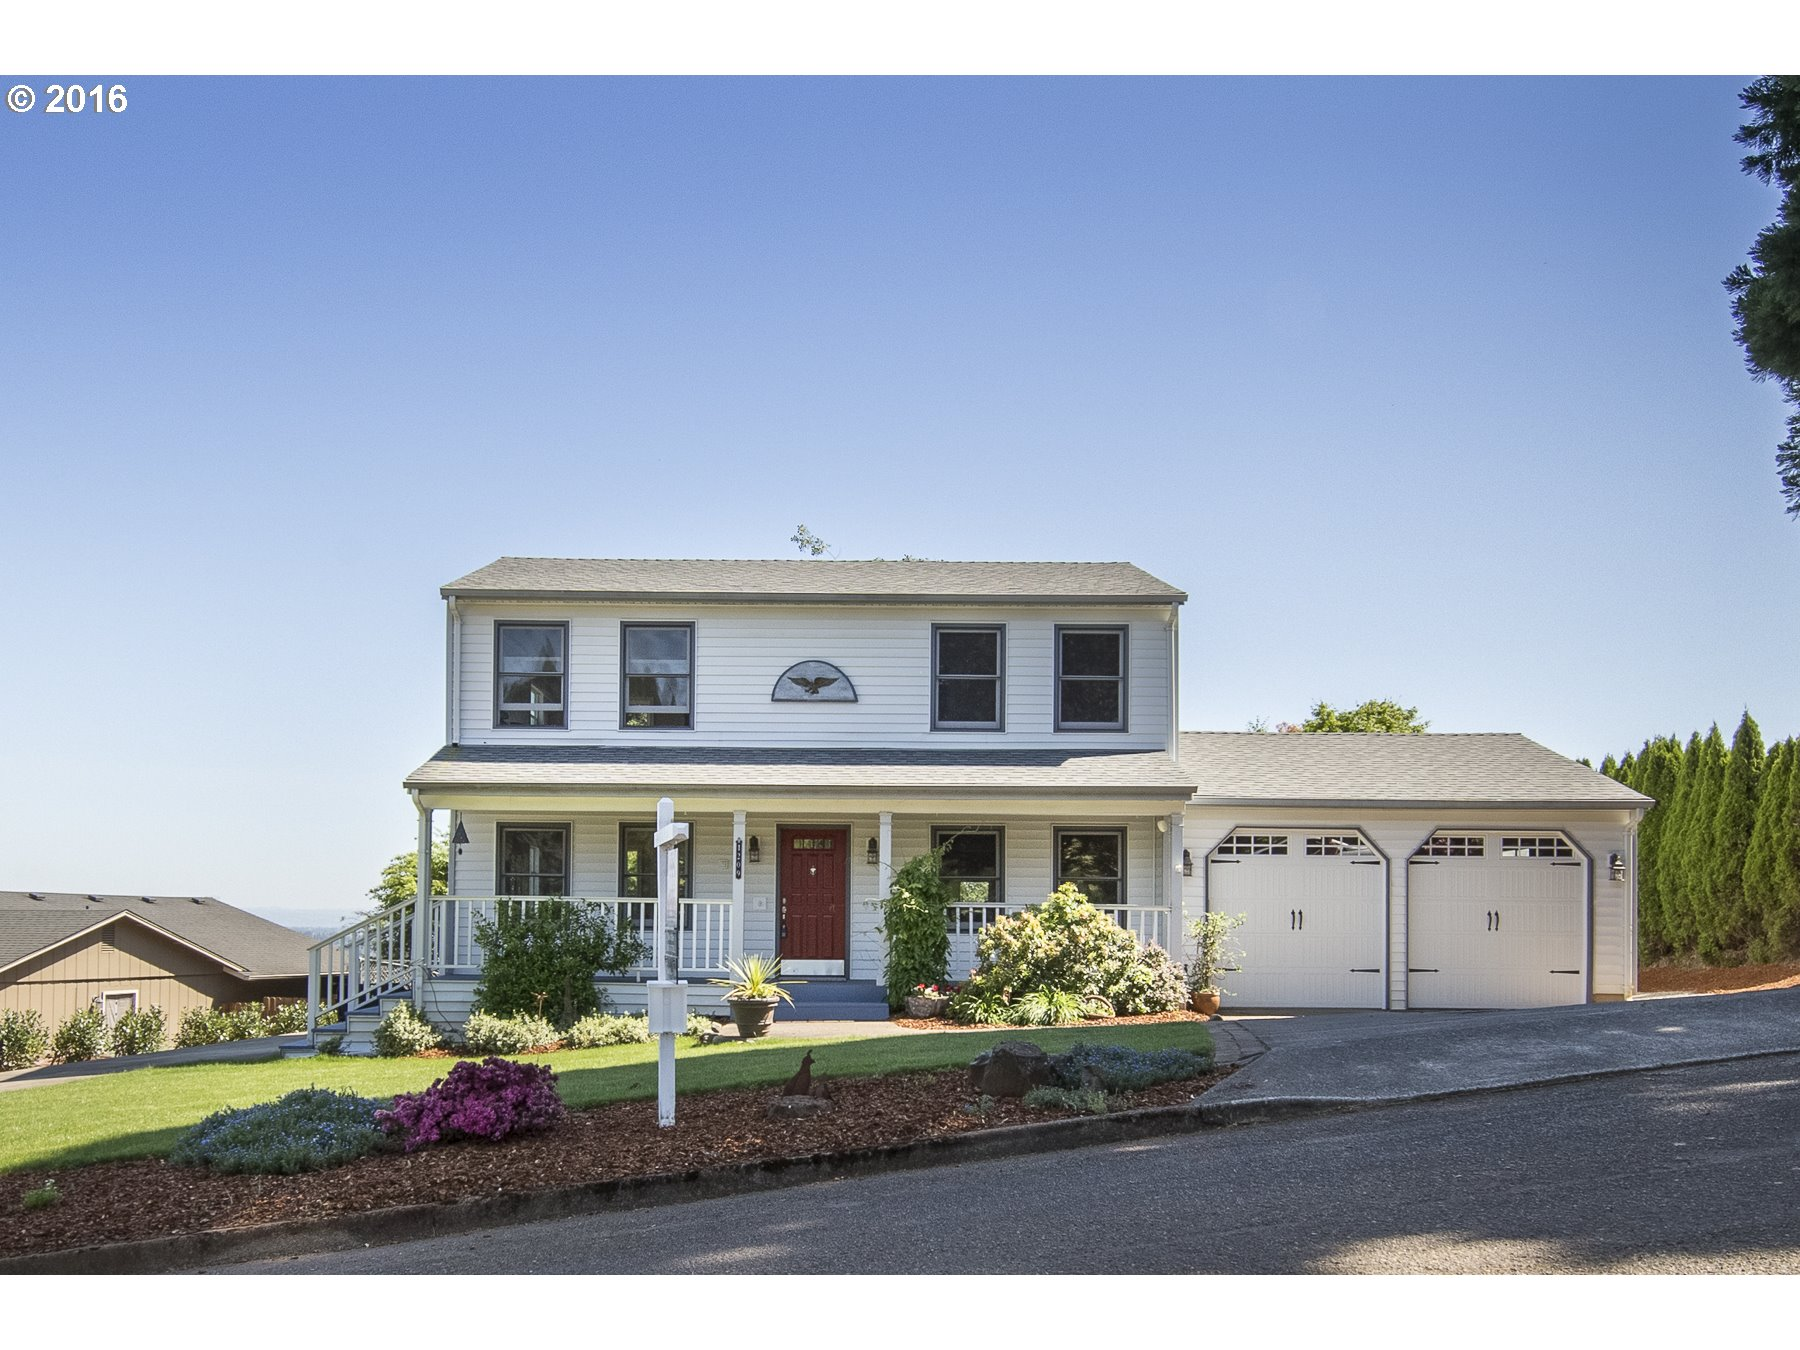 1209 SW 1st St, Dundee OR 97115